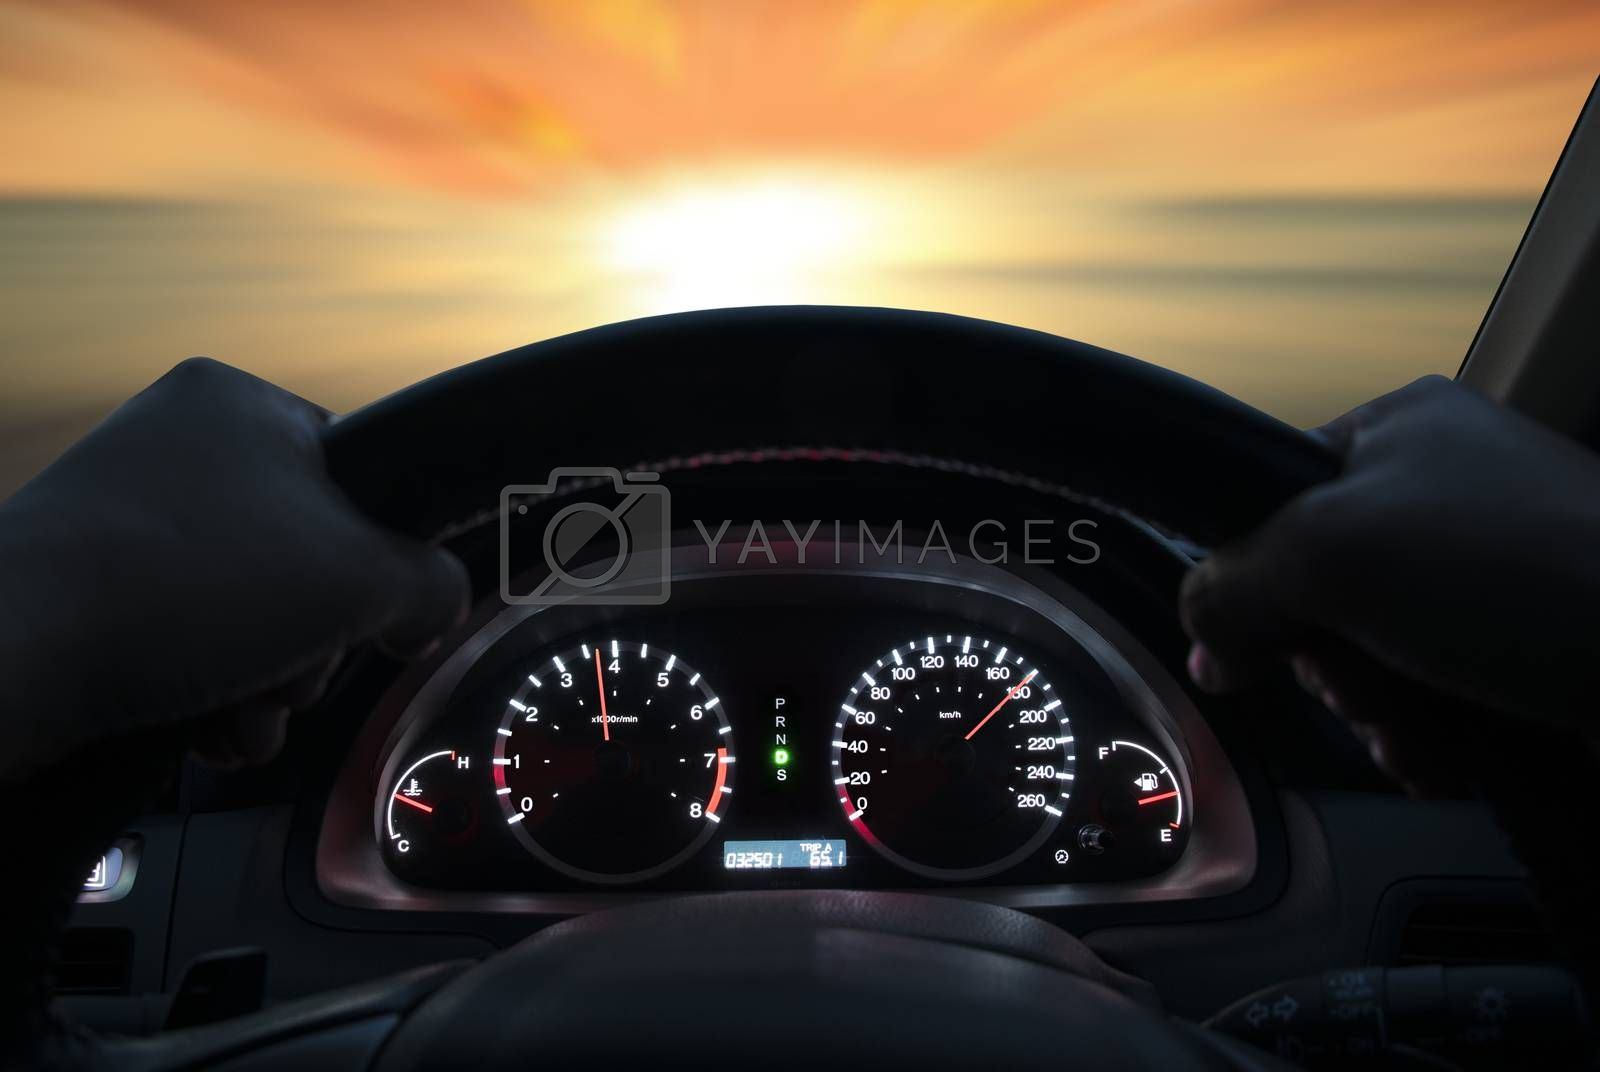 Speed driving at 180 km/h on the road at sunset.